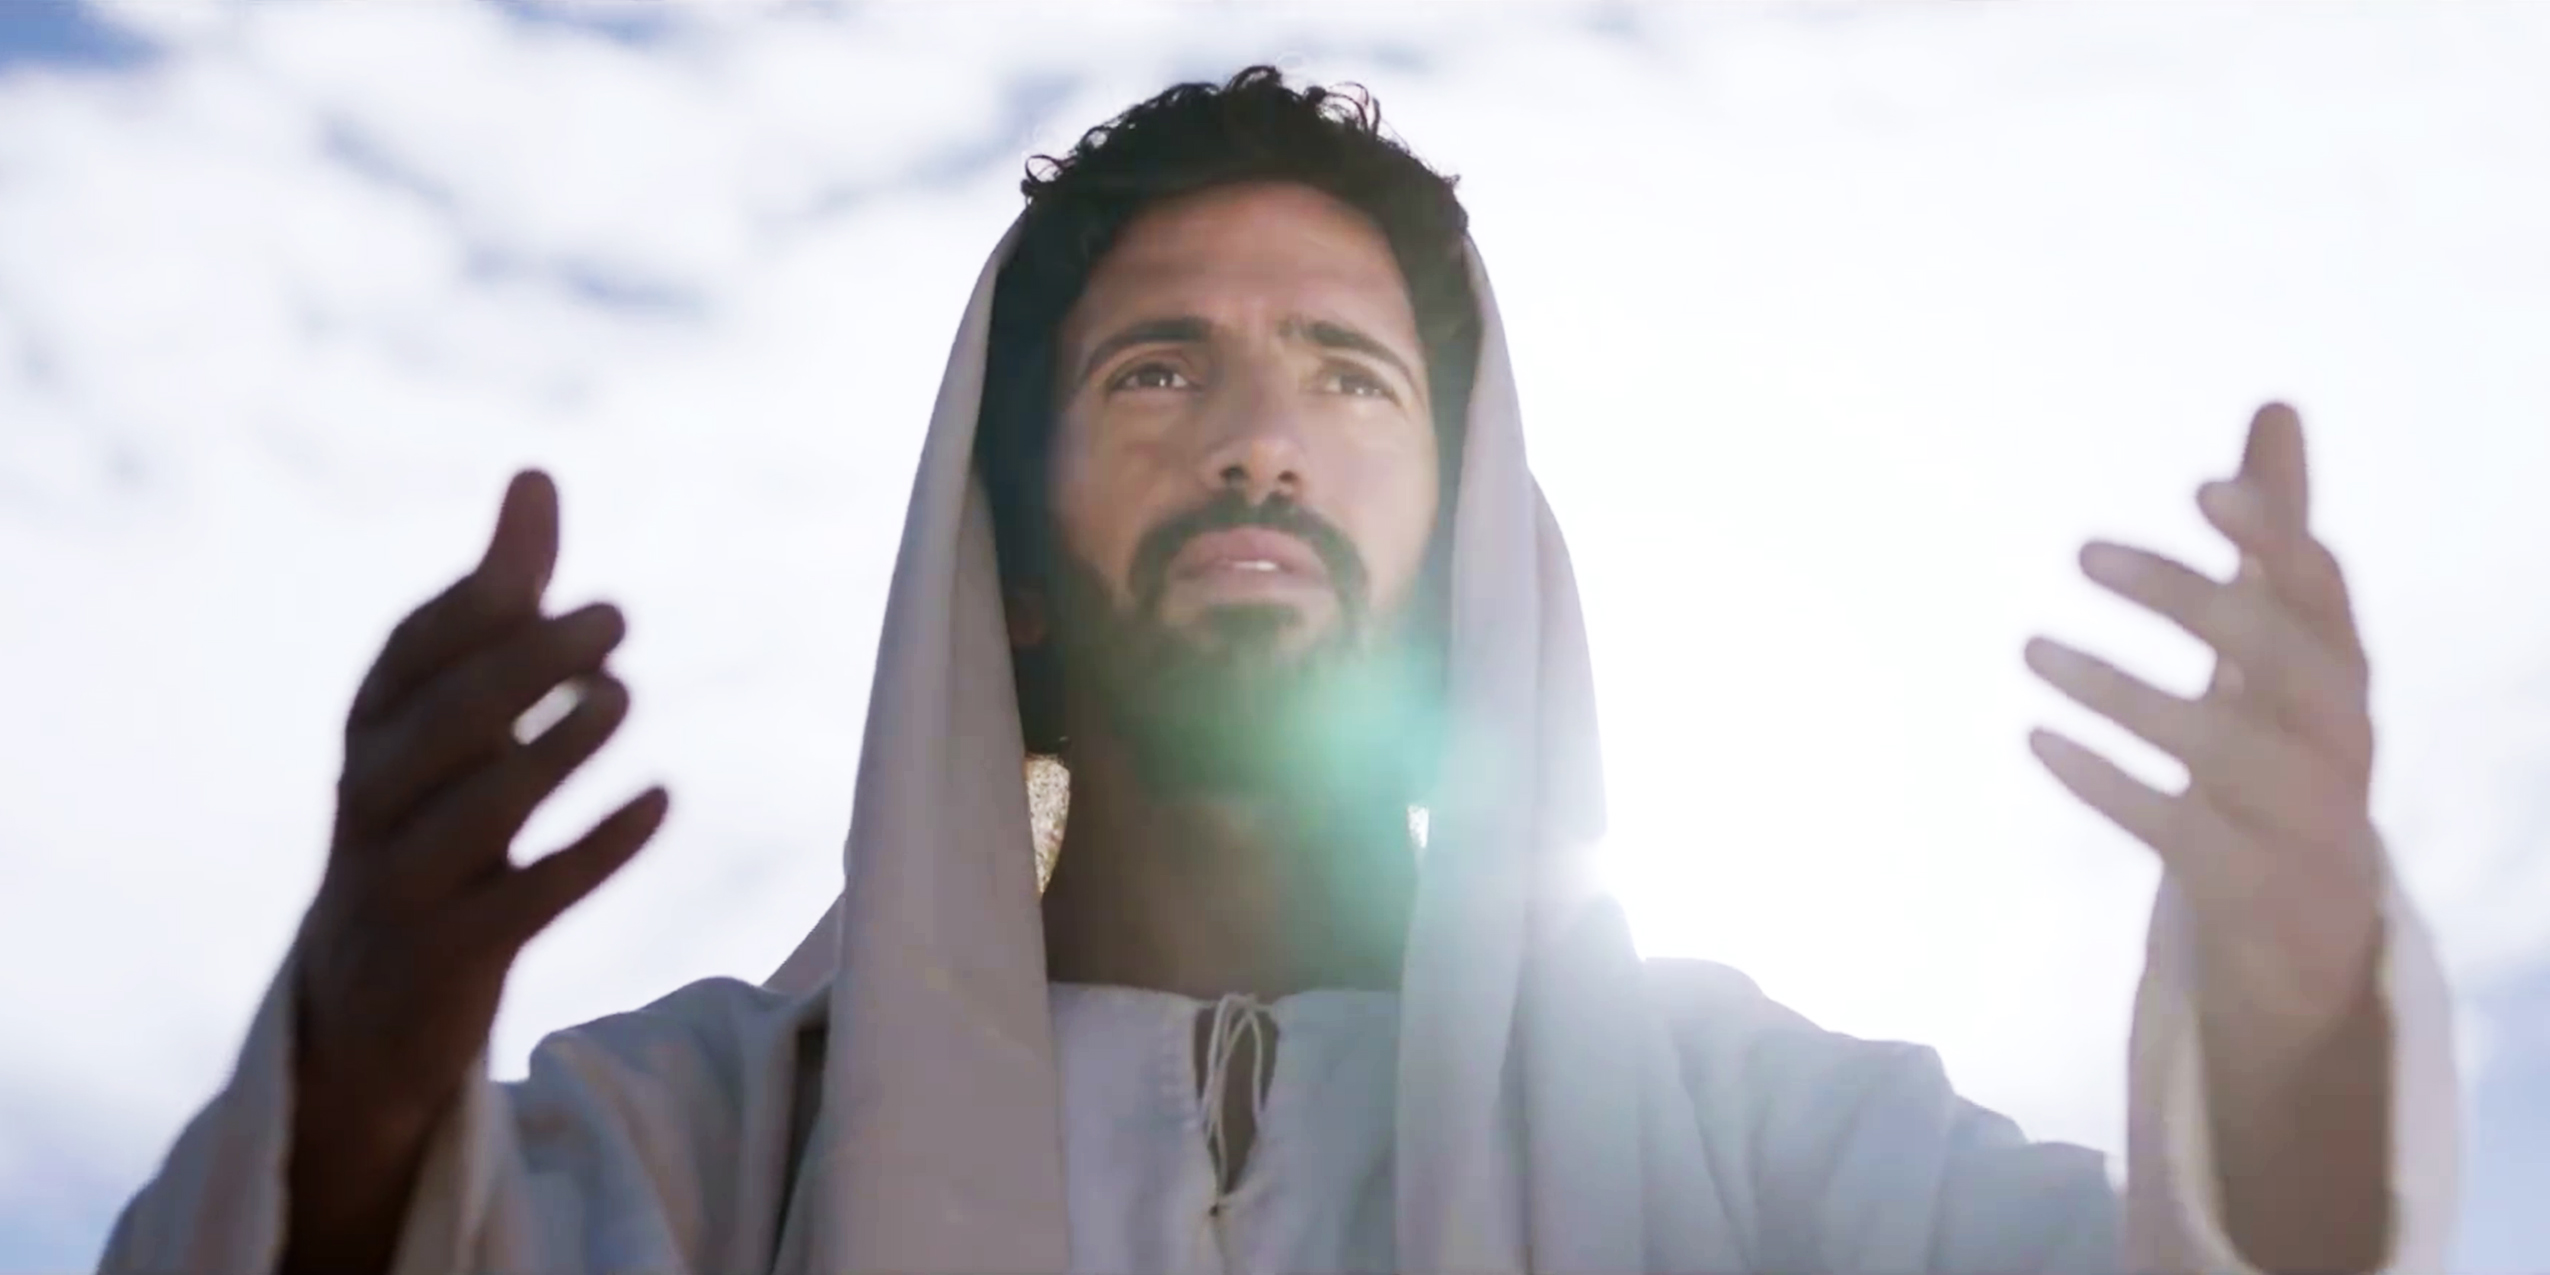 How to watch 'Jesus: His Life' online for free